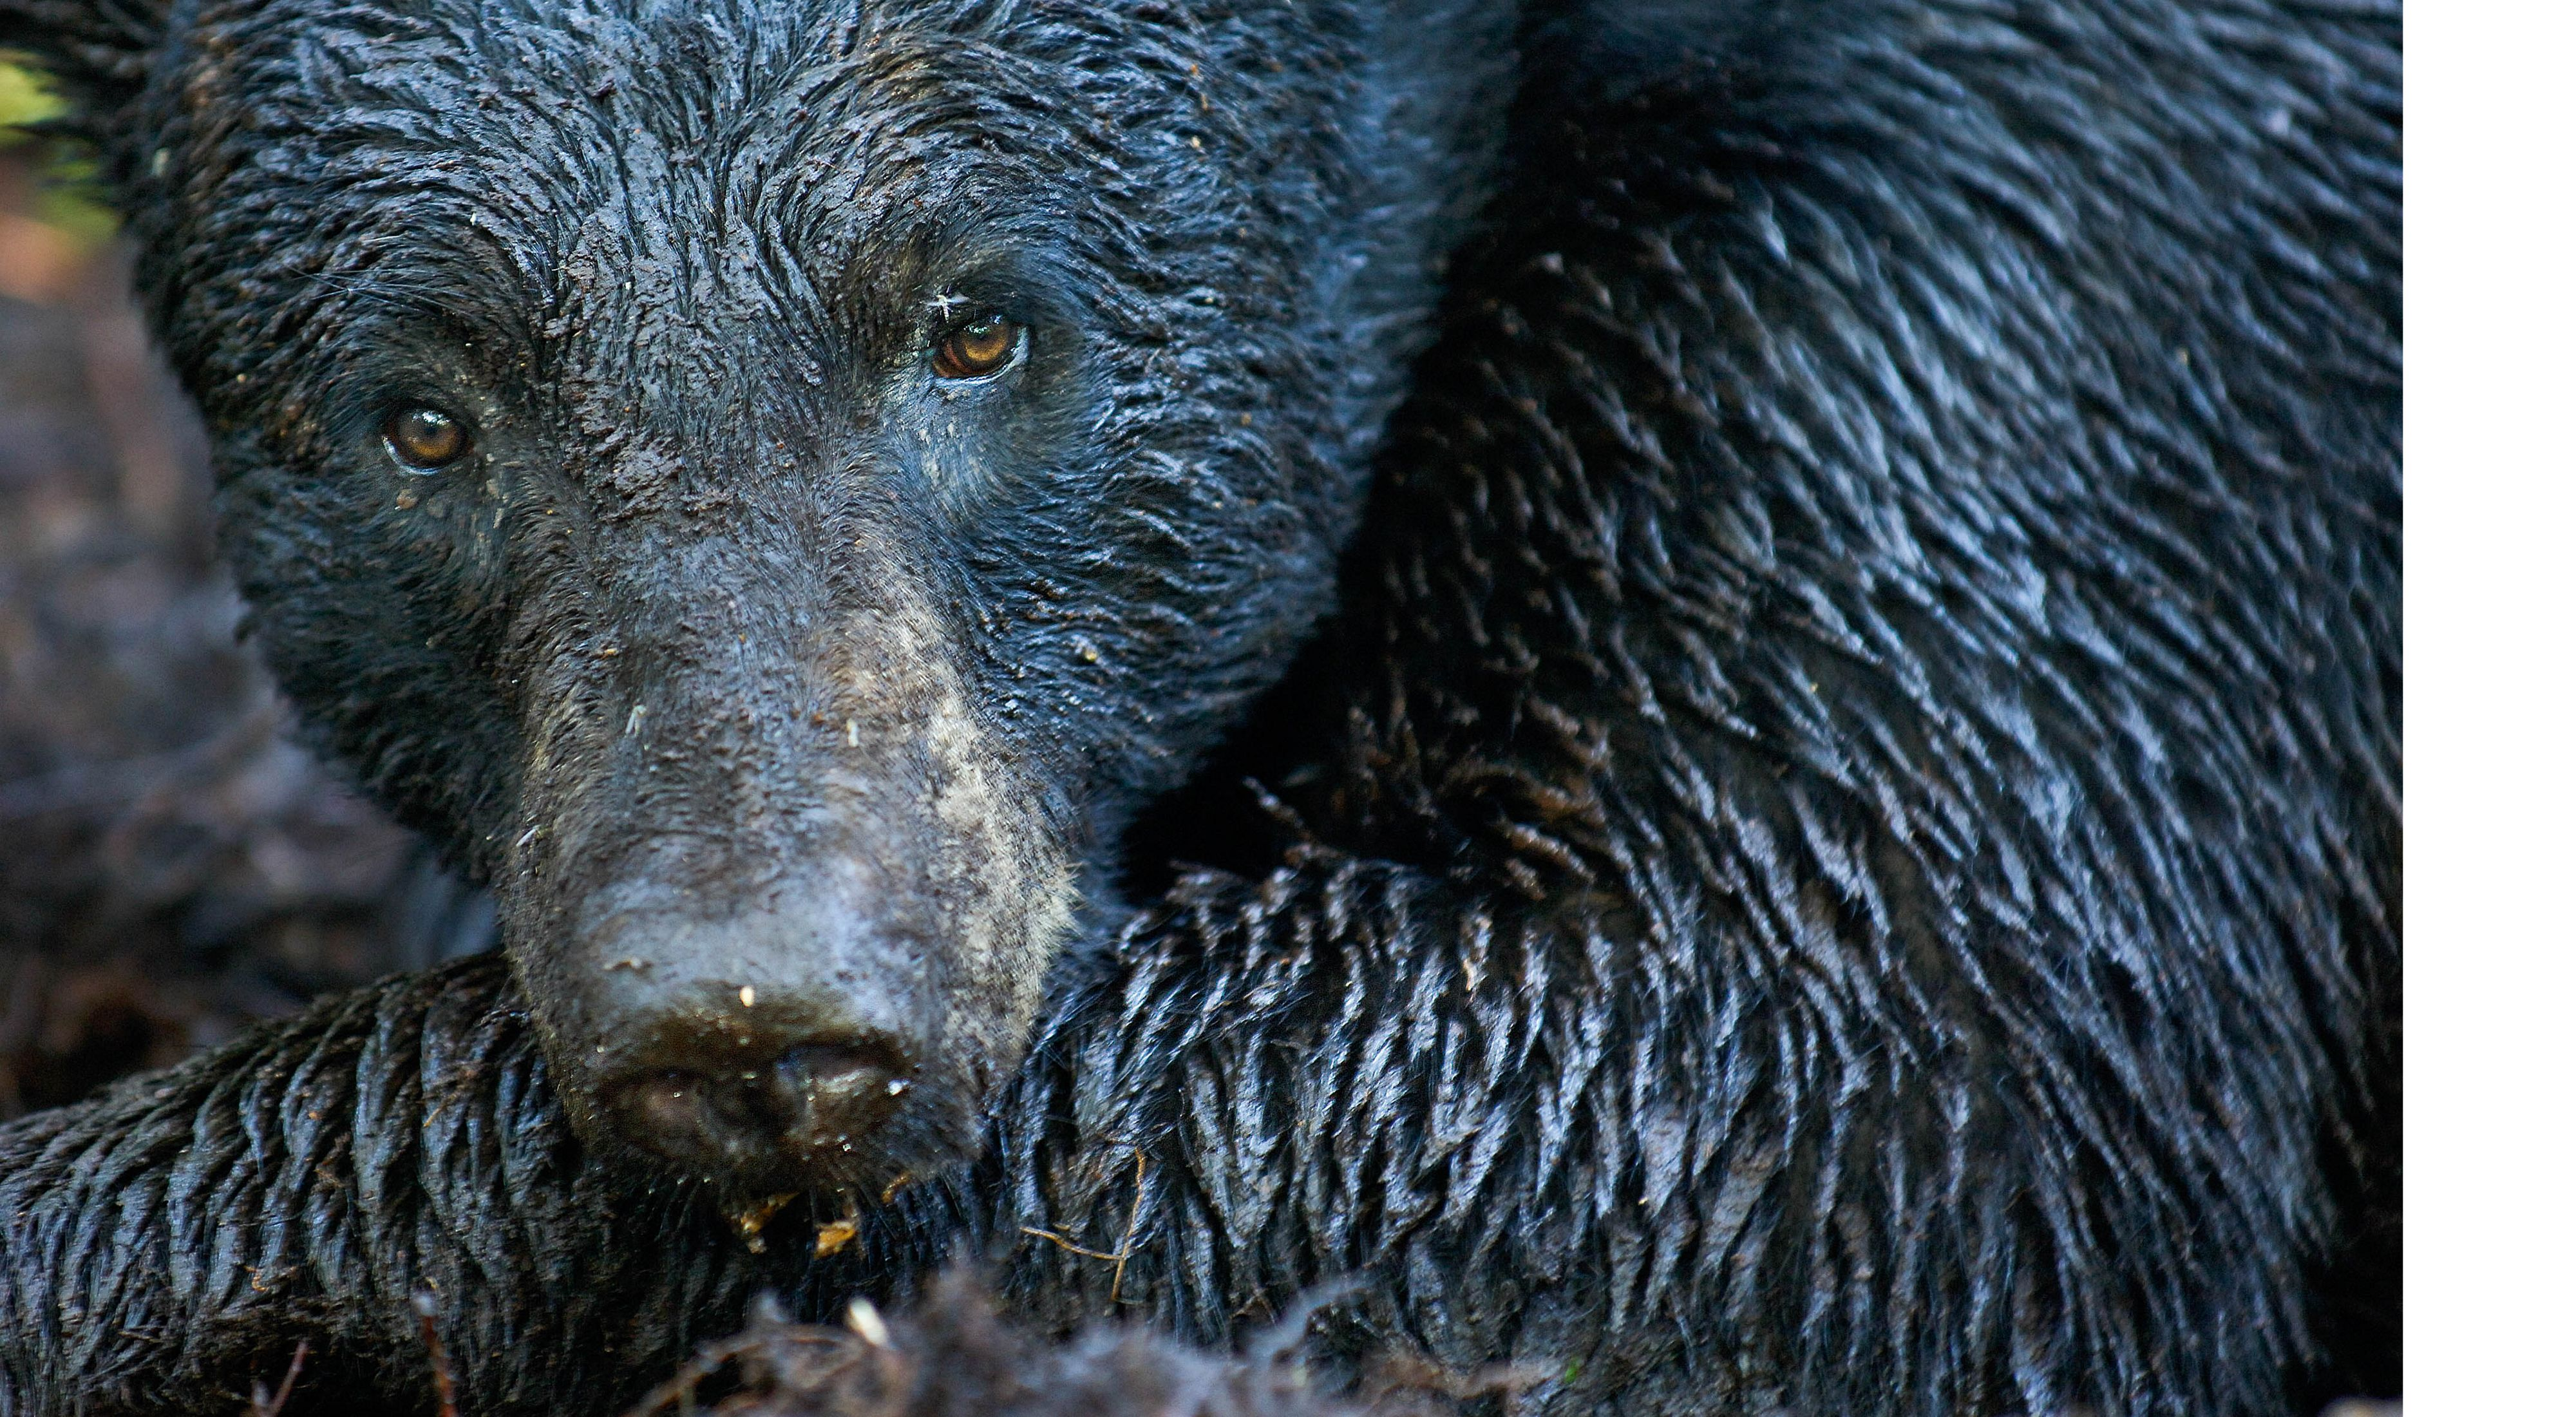 Closeup of the head and shoulder of a Florida black bear with wet, glistening fur.